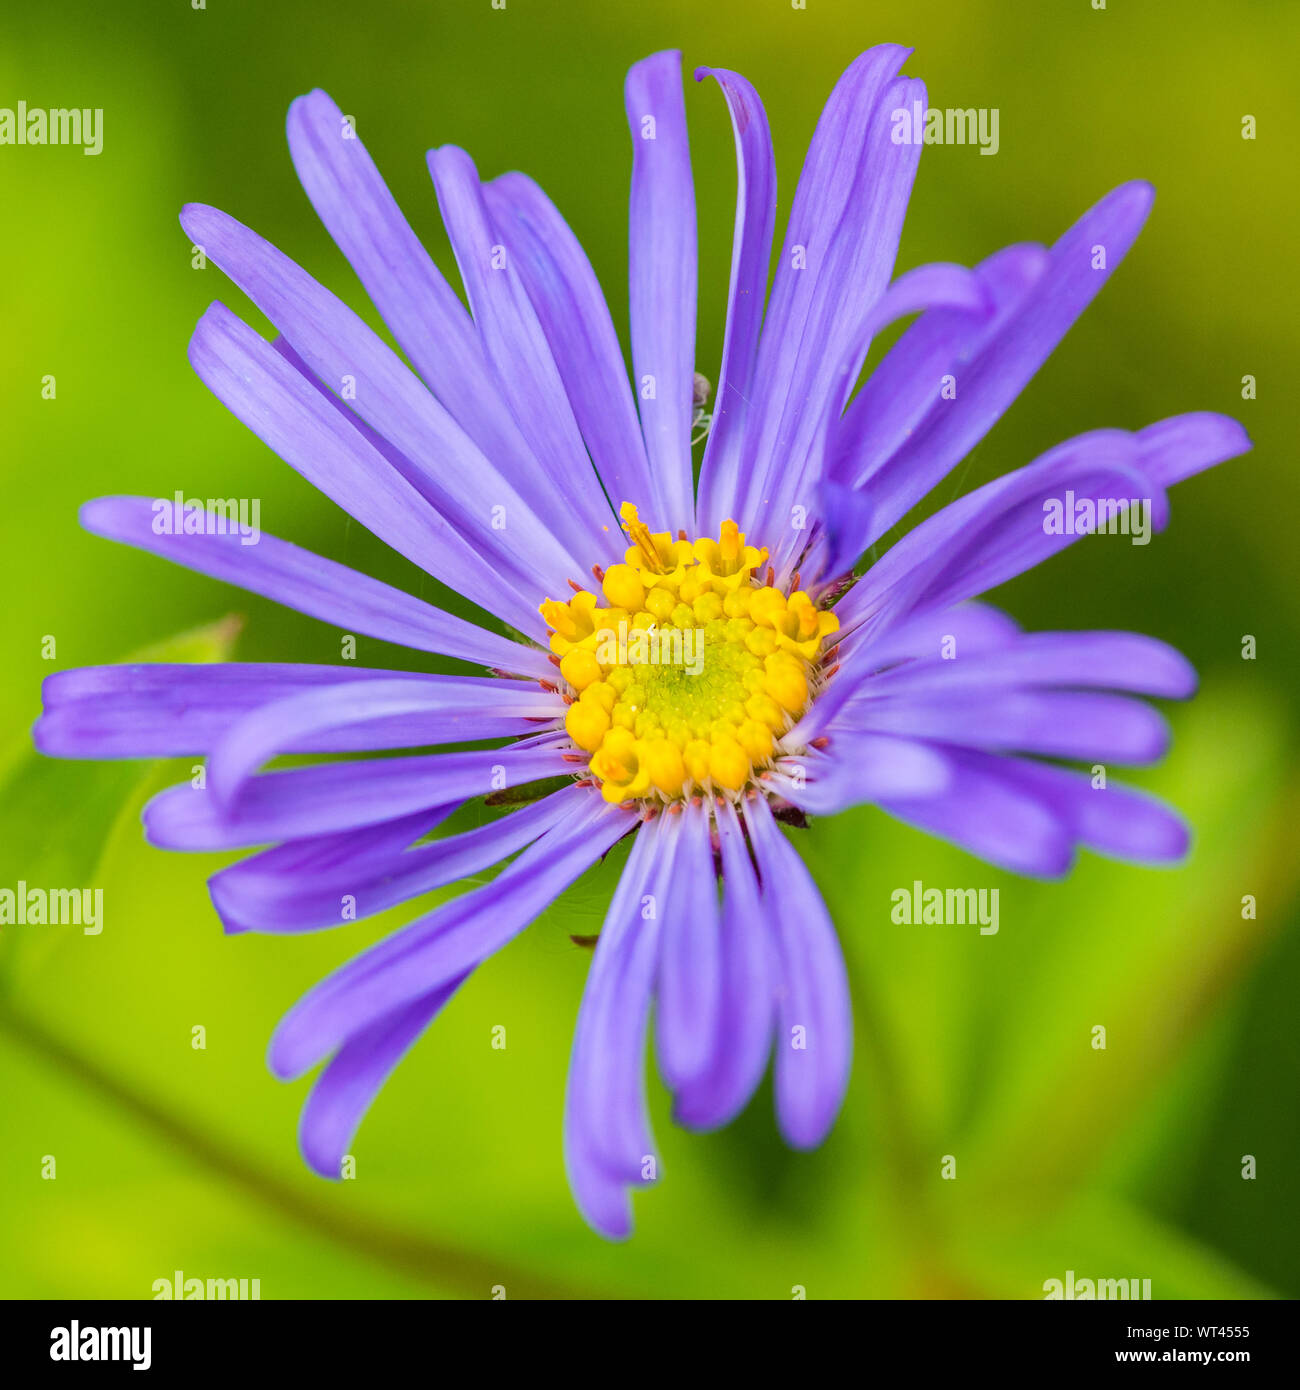 A macro shot of a blue aster frikartii monch bloom with a crab spider hiding between the petals. Stock Photo